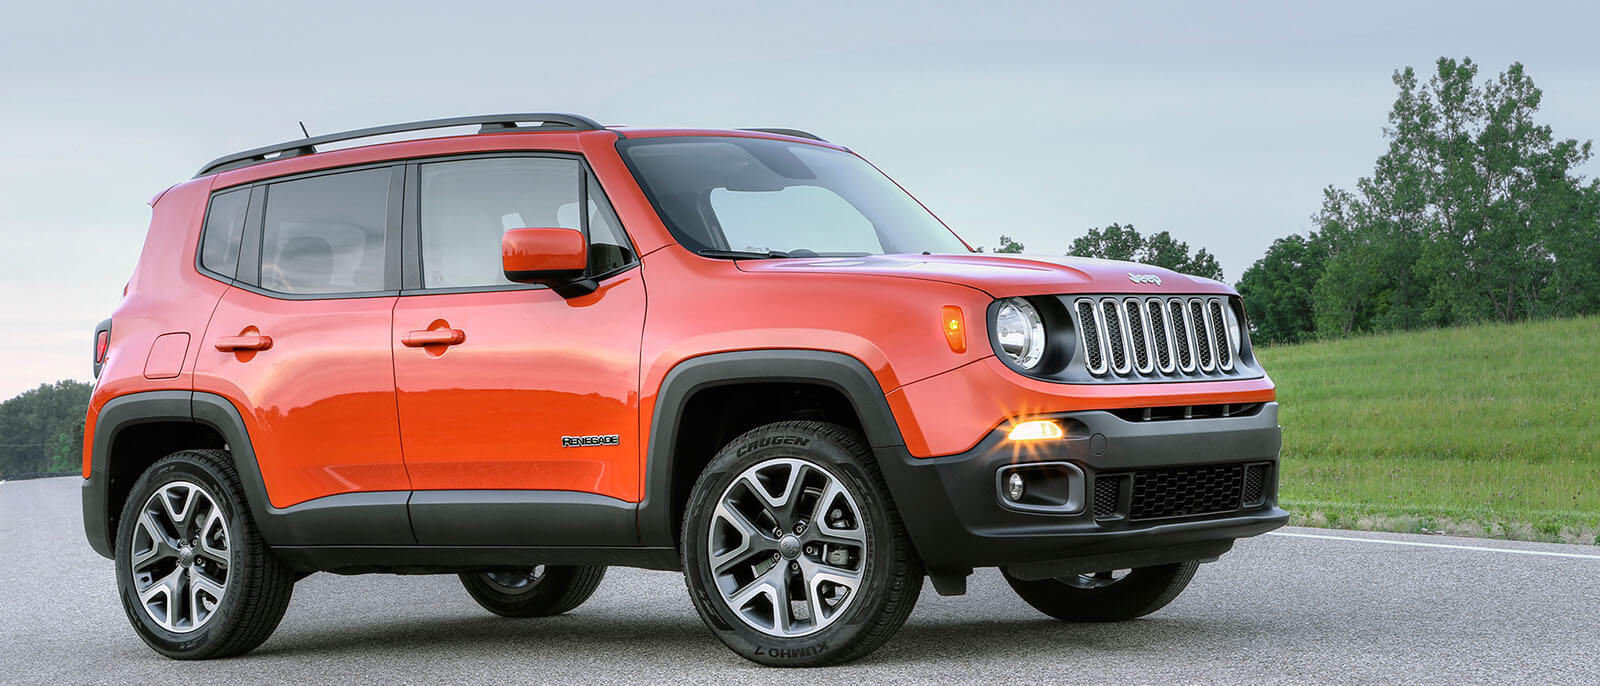 2017 Jeep Renegade Parked